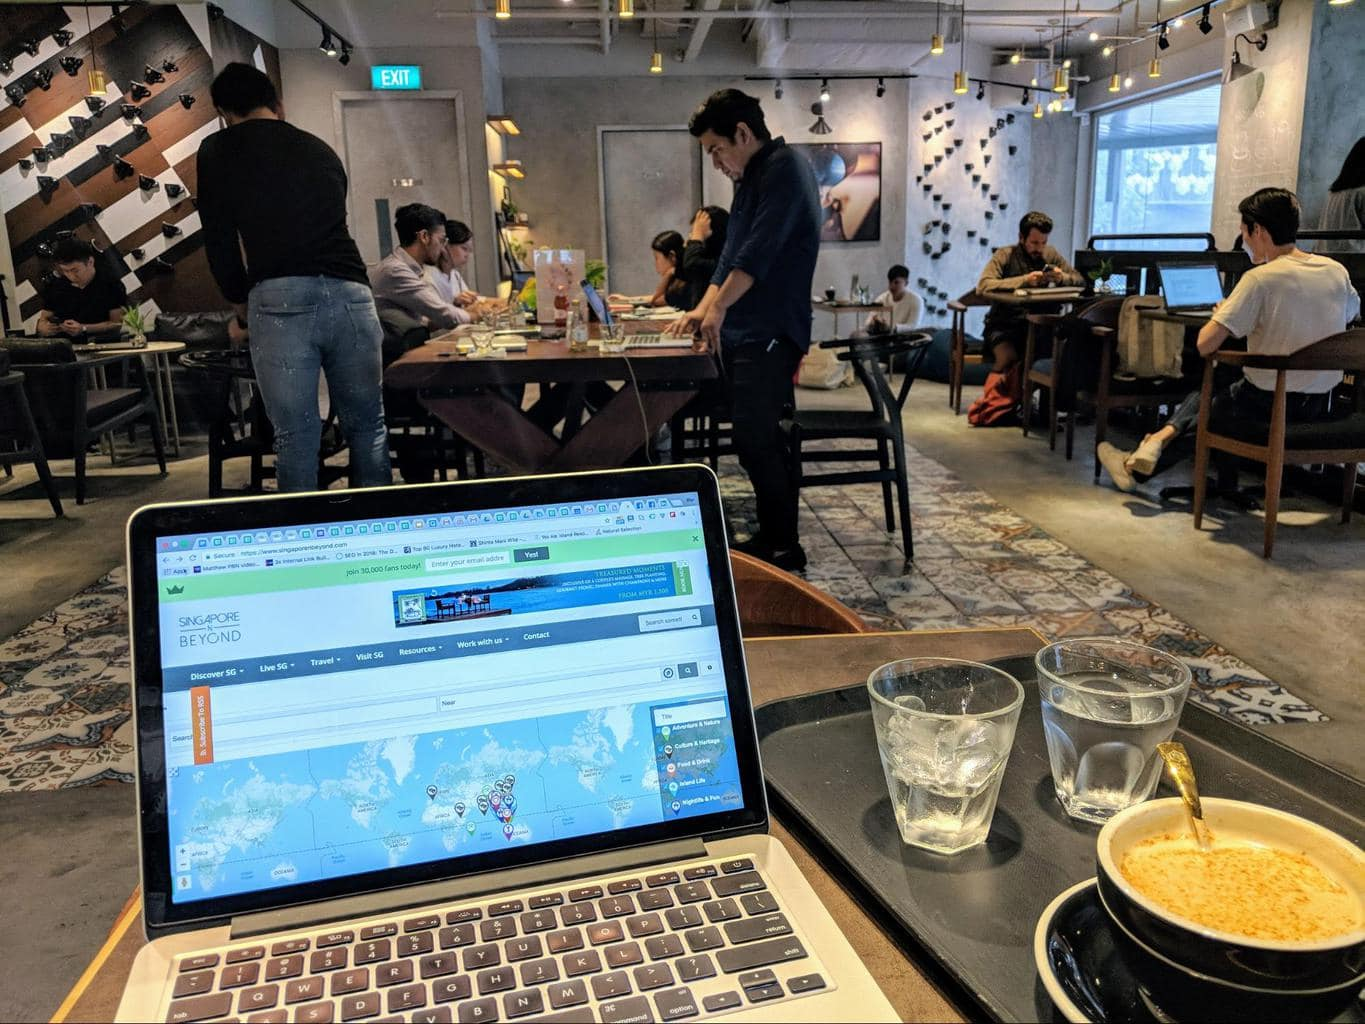 Mellower Cafe, very digital nomad friendly